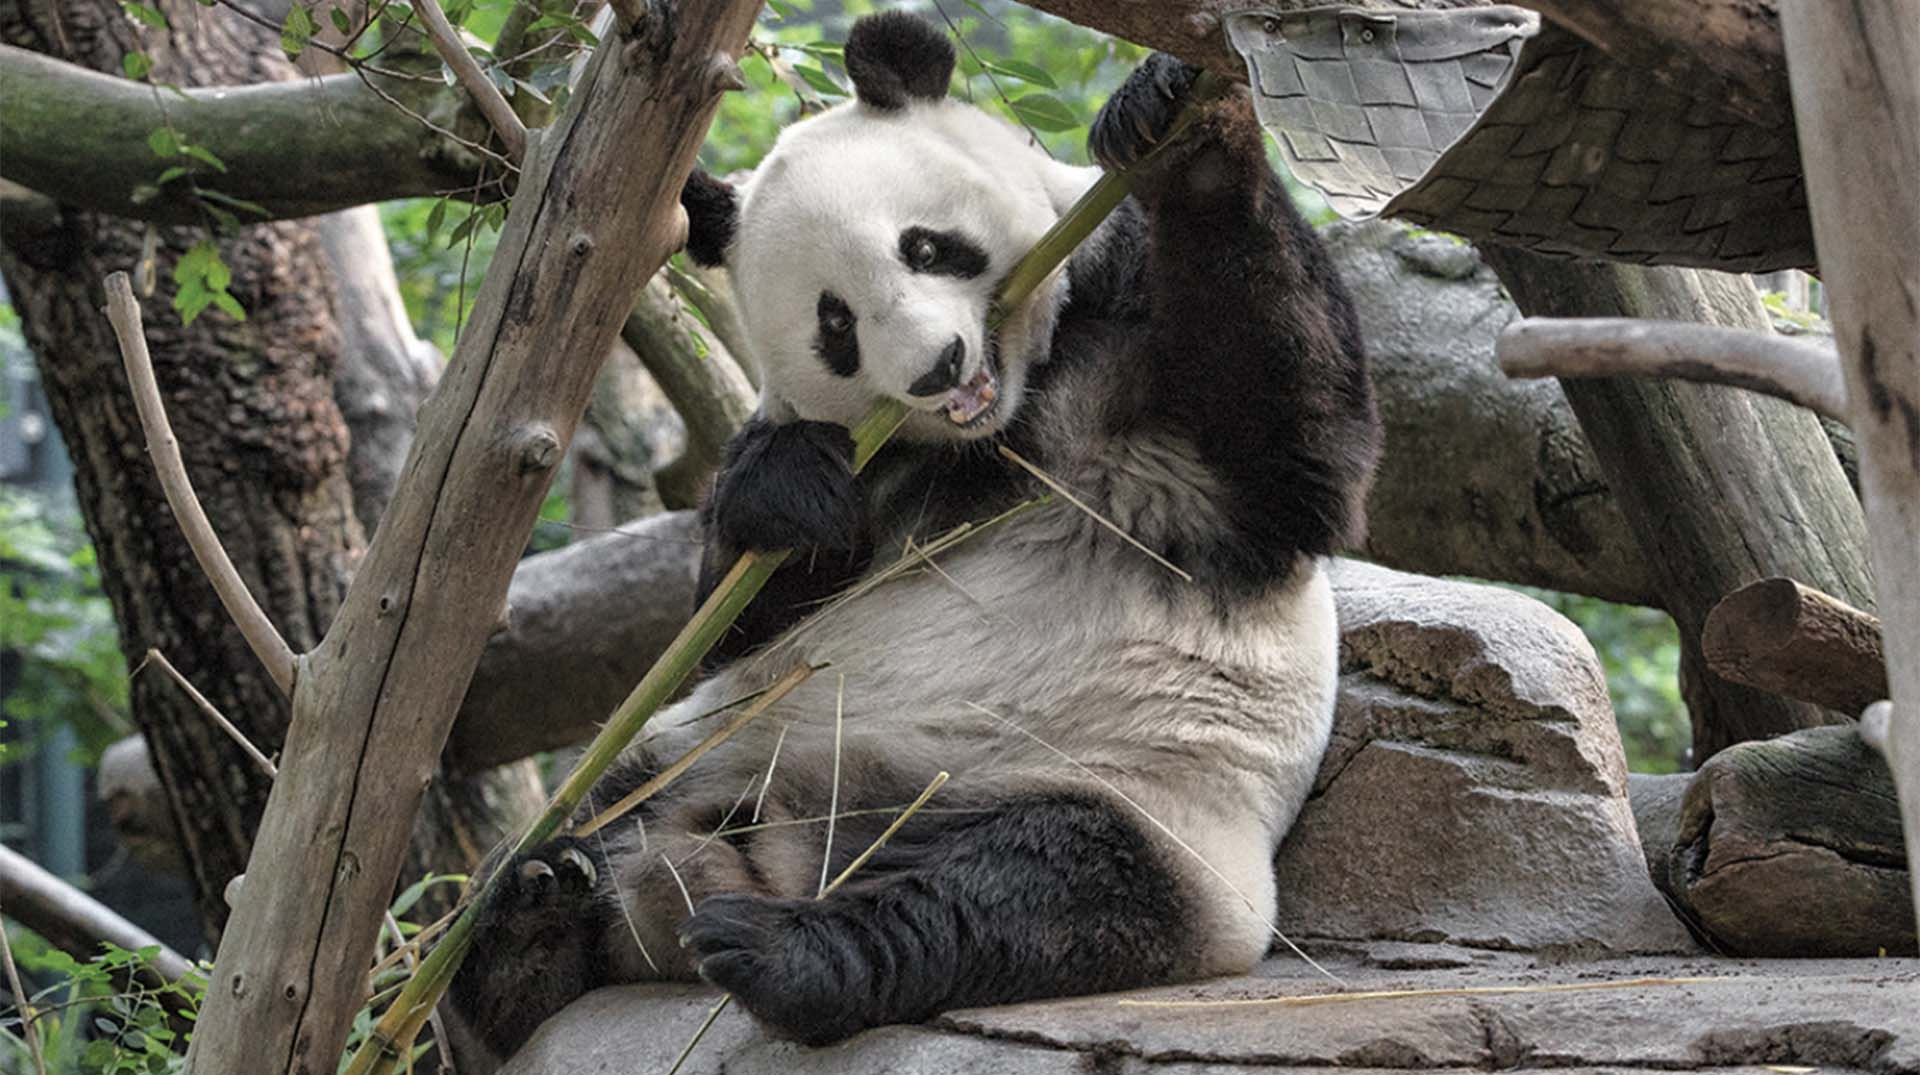 Giant panda munching on bamboo